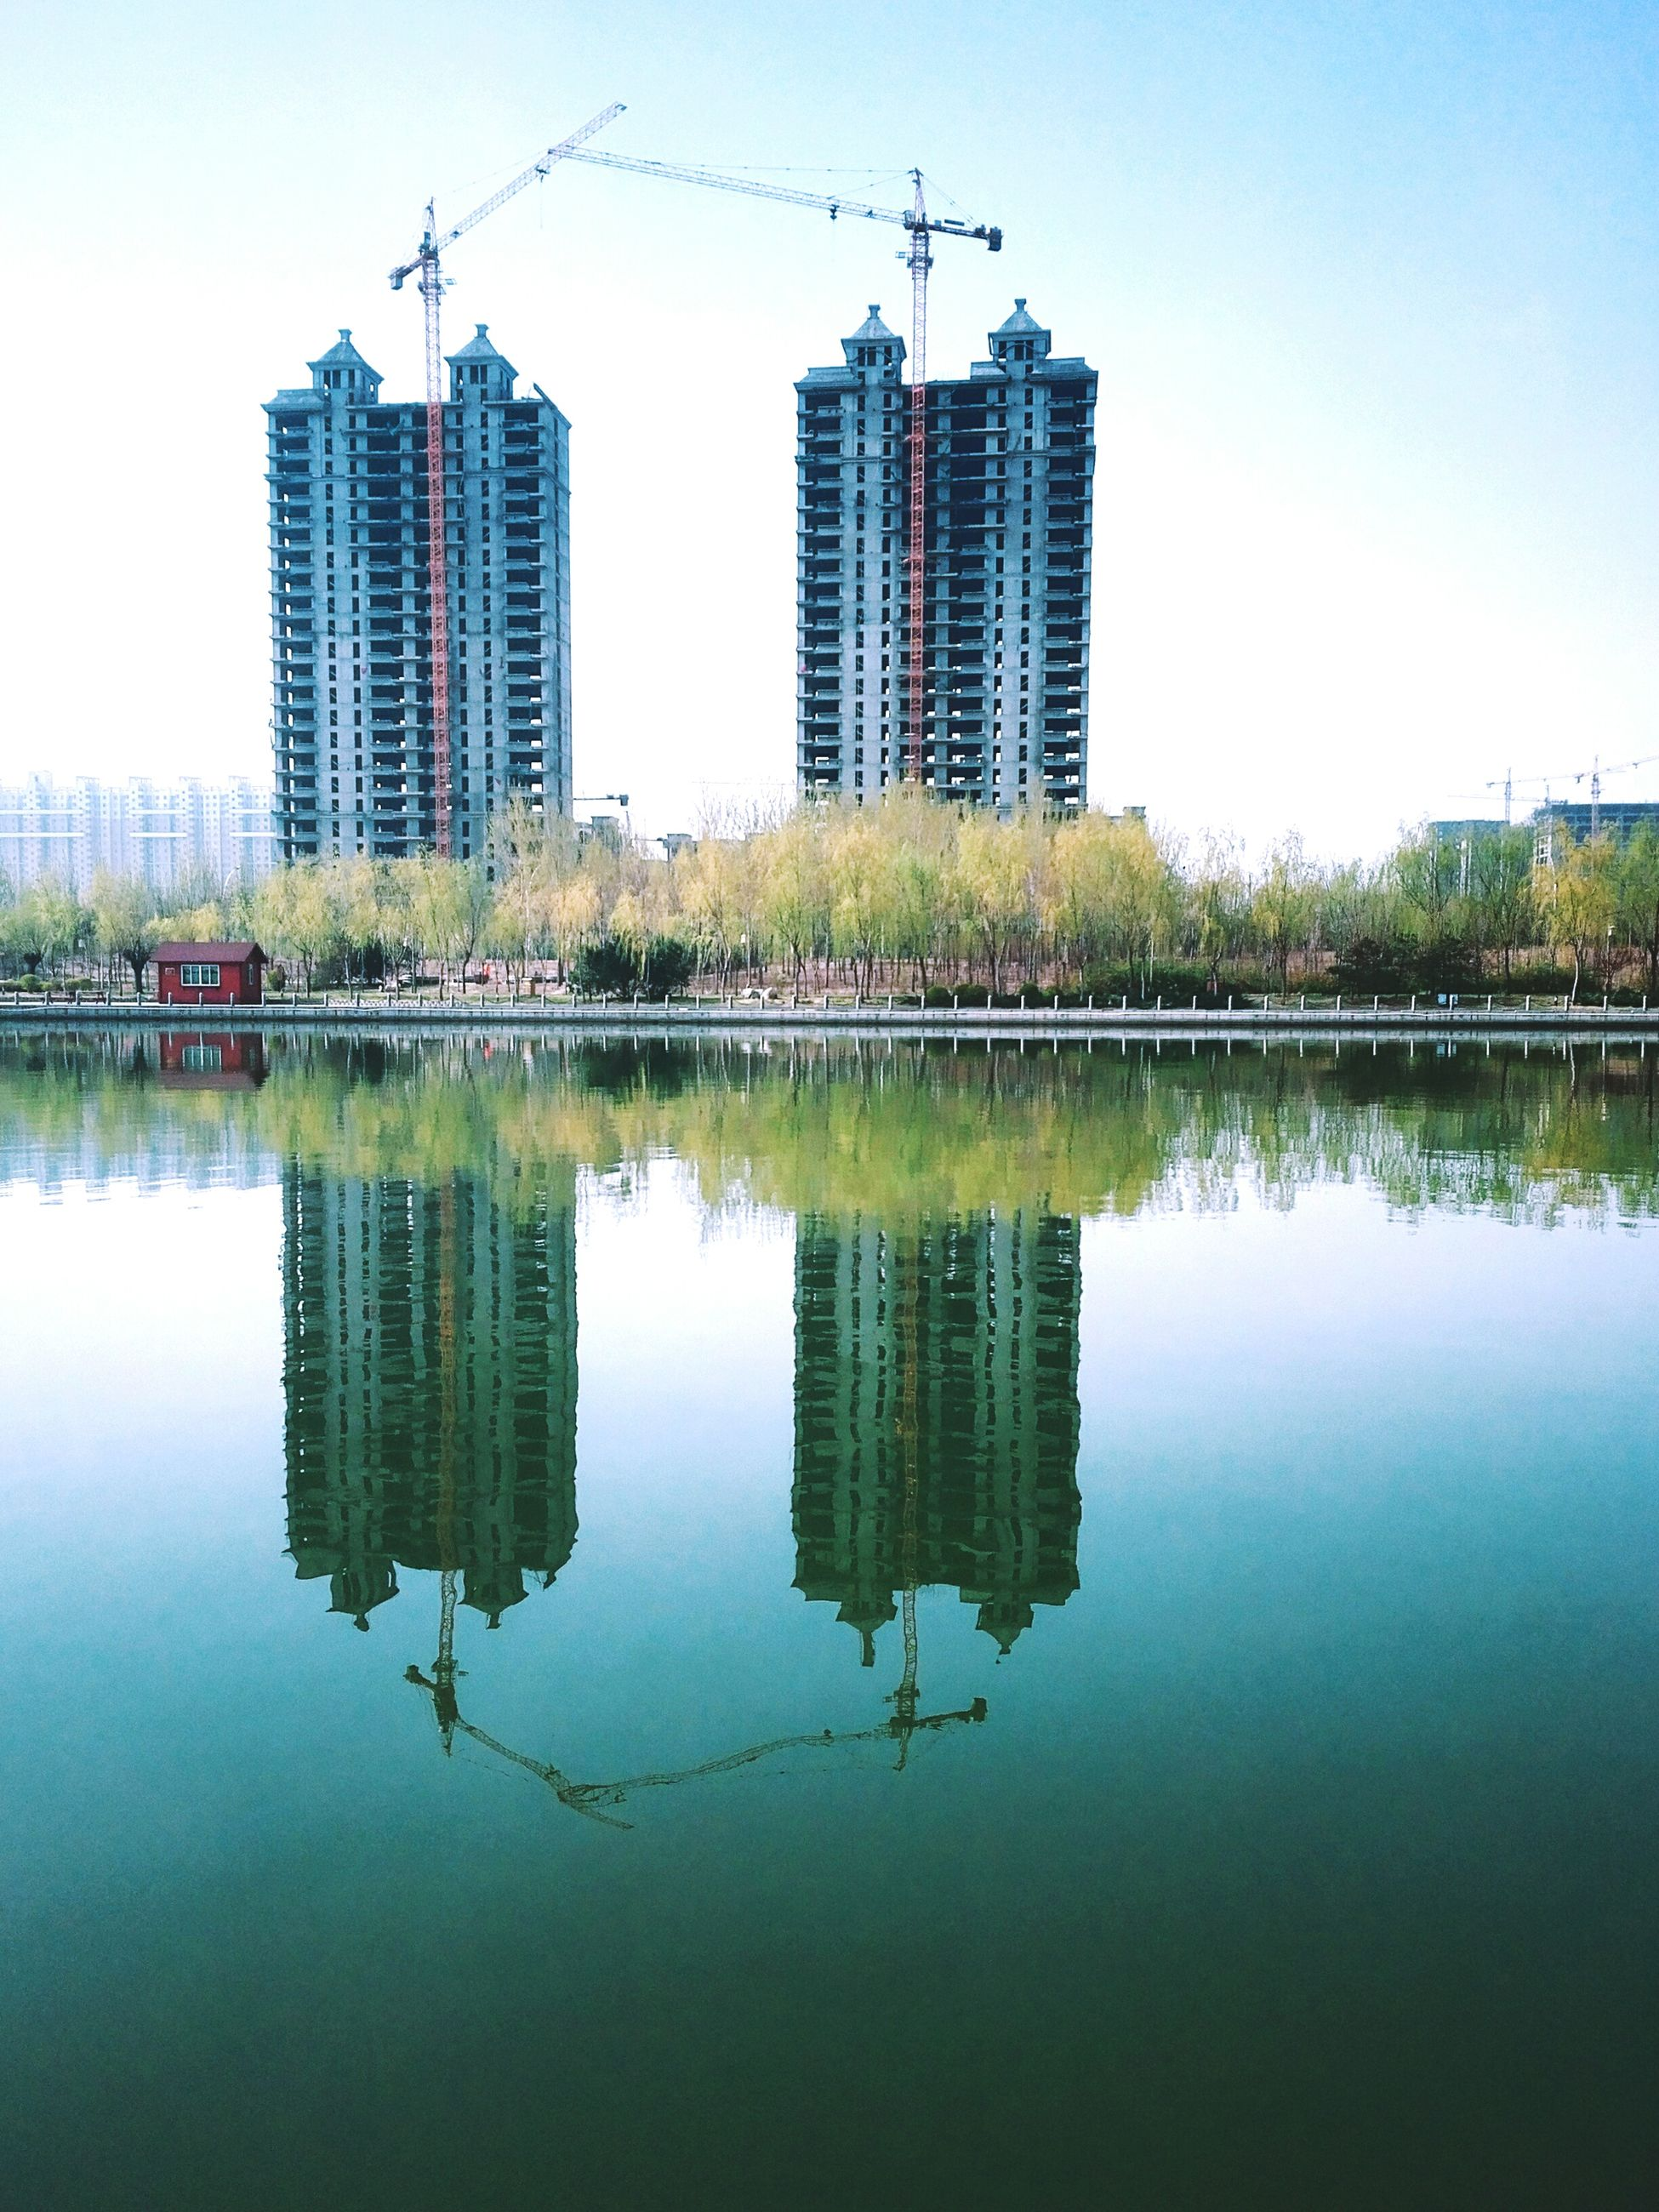 architecture, reflection, water, built structure, building exterior, waterfront, city, river, clear sky, connection, skyscraper, lake, tower, modern, building, standing water, sky, office building, day, outdoors